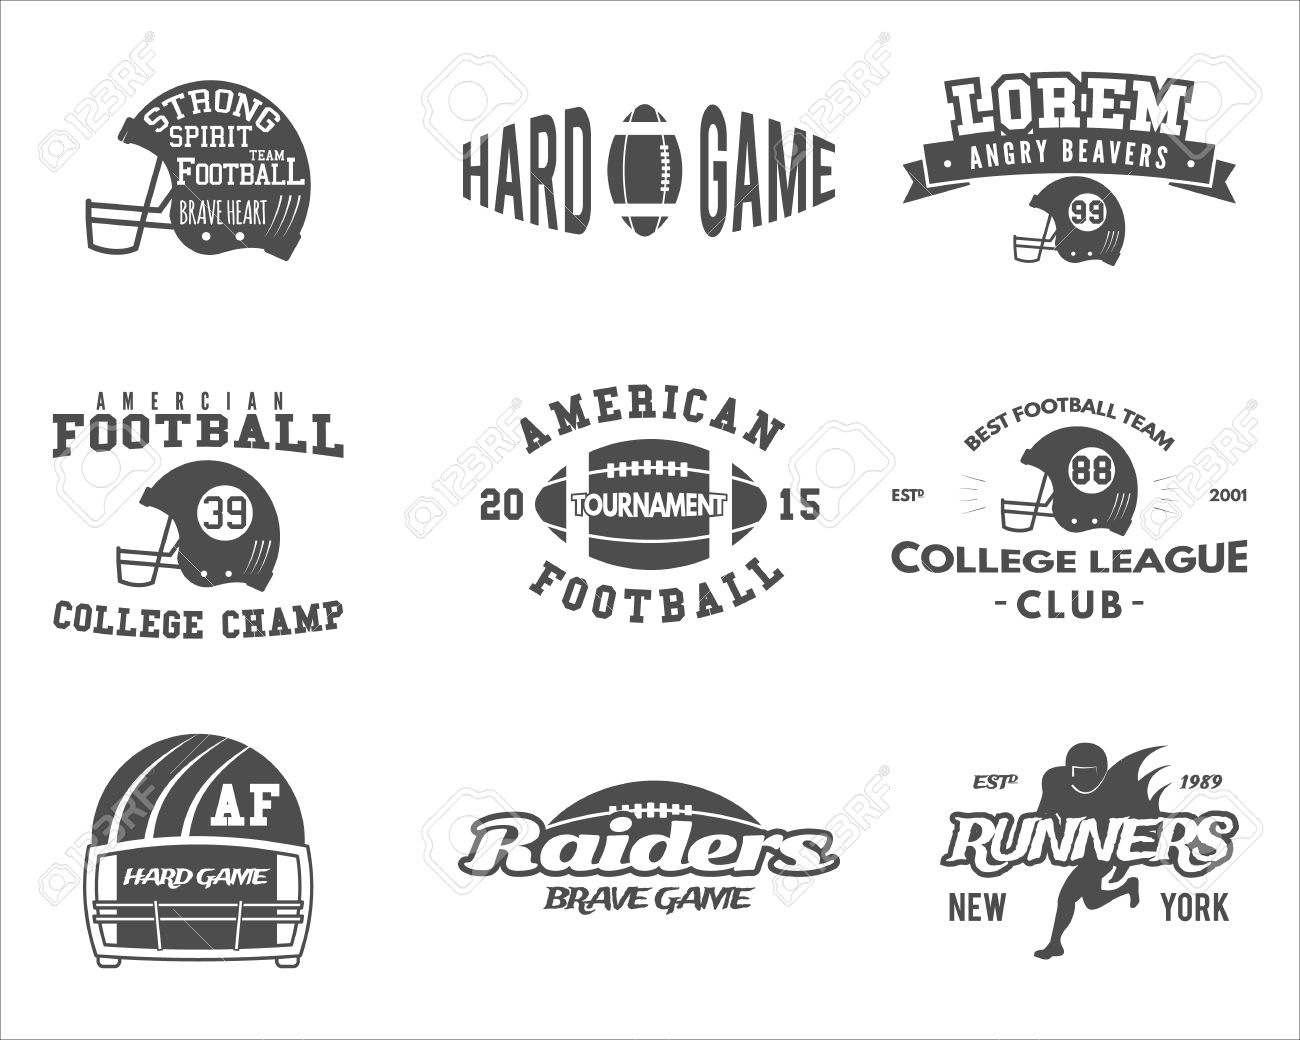 College Rugby And American Football Team Badges d9a3415c9